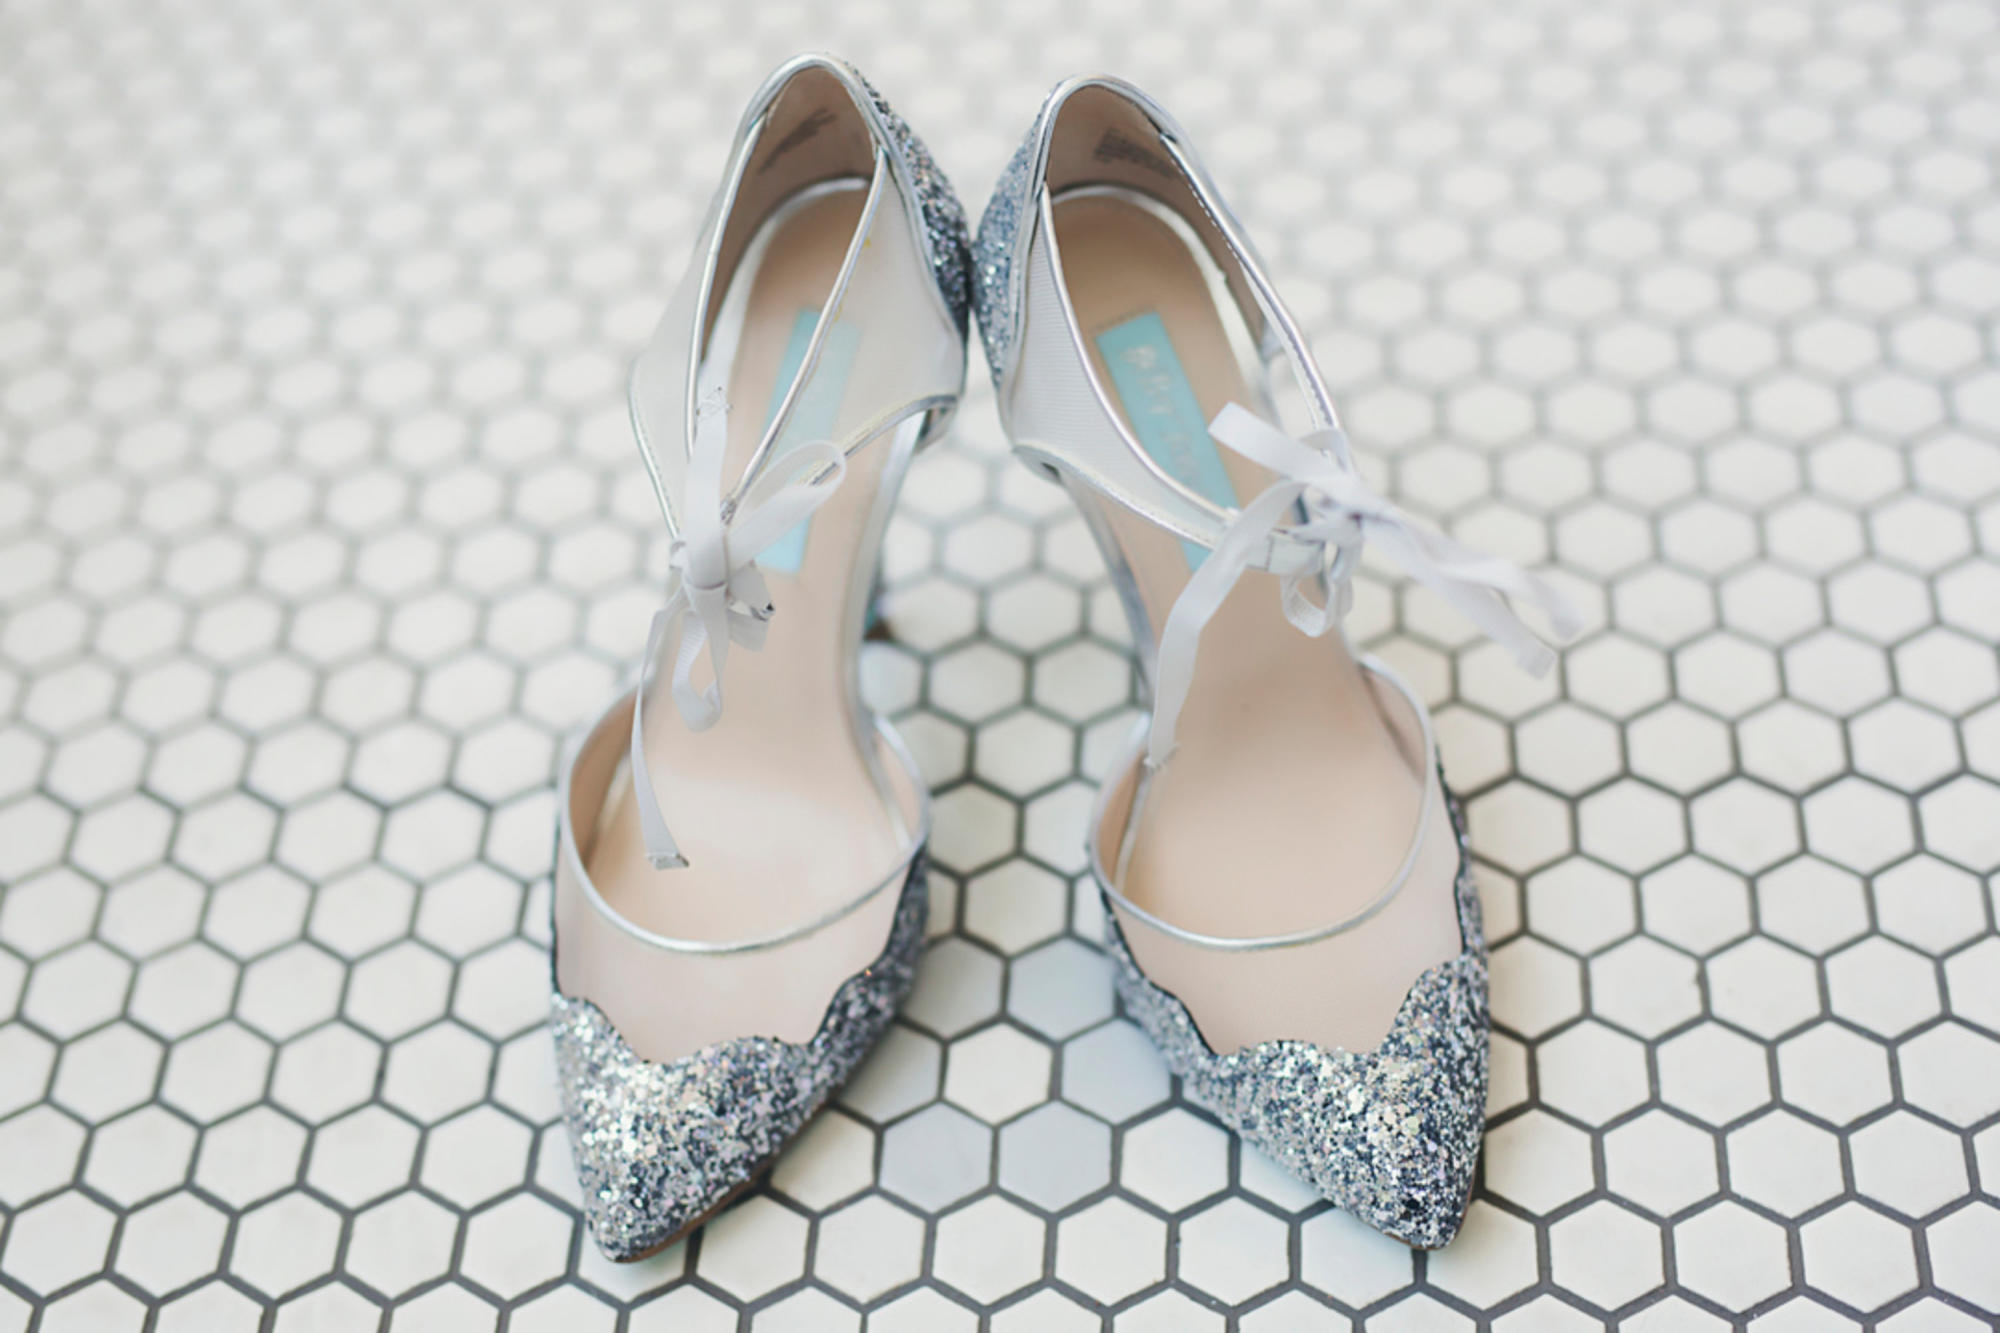 How To Choose Your Wedding Shoes Zola Expert Wedding Advice